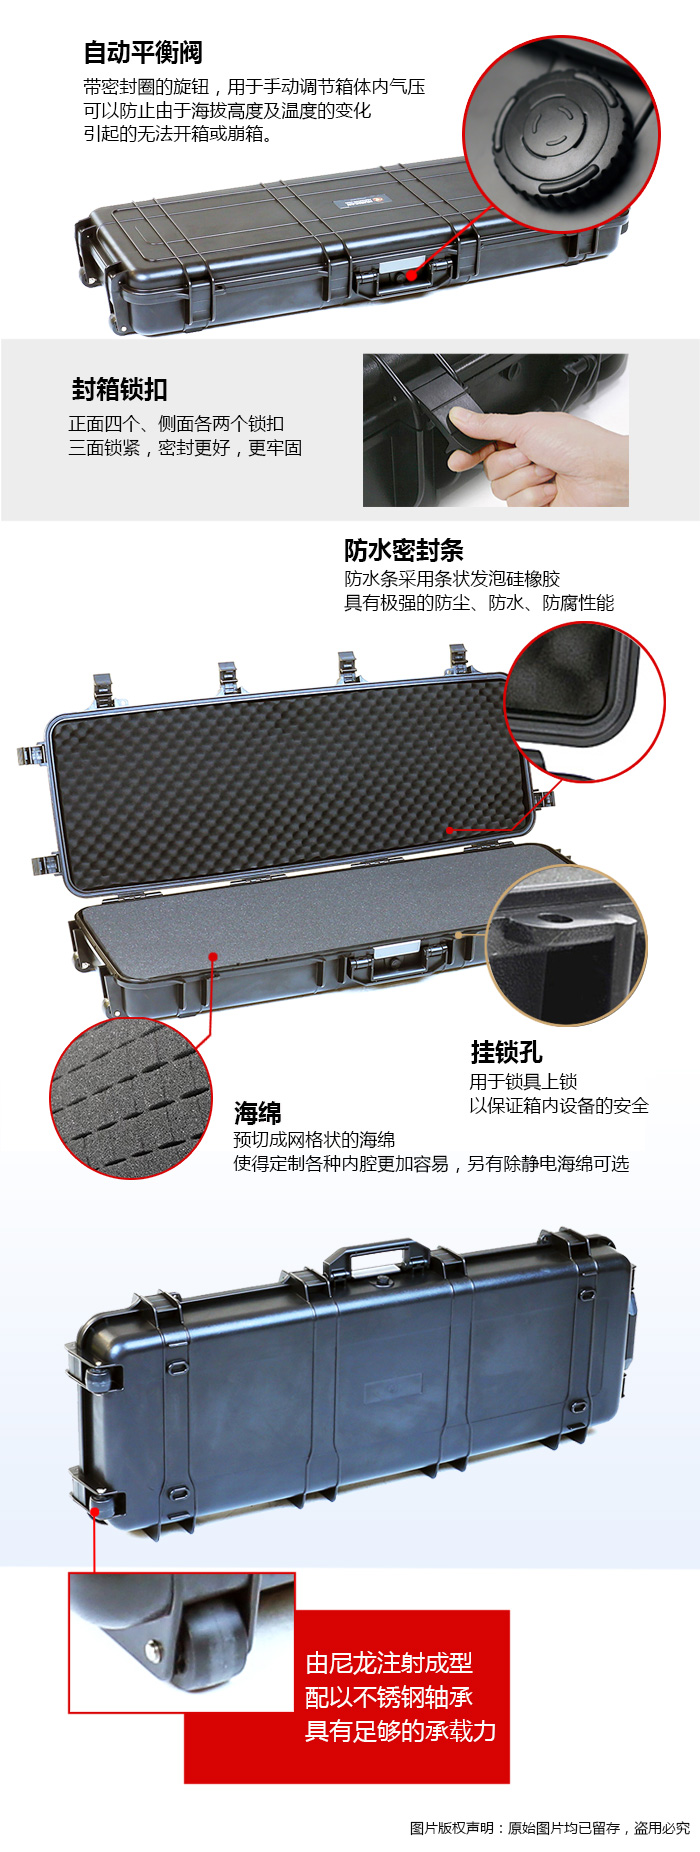 rifle_cases_37-25